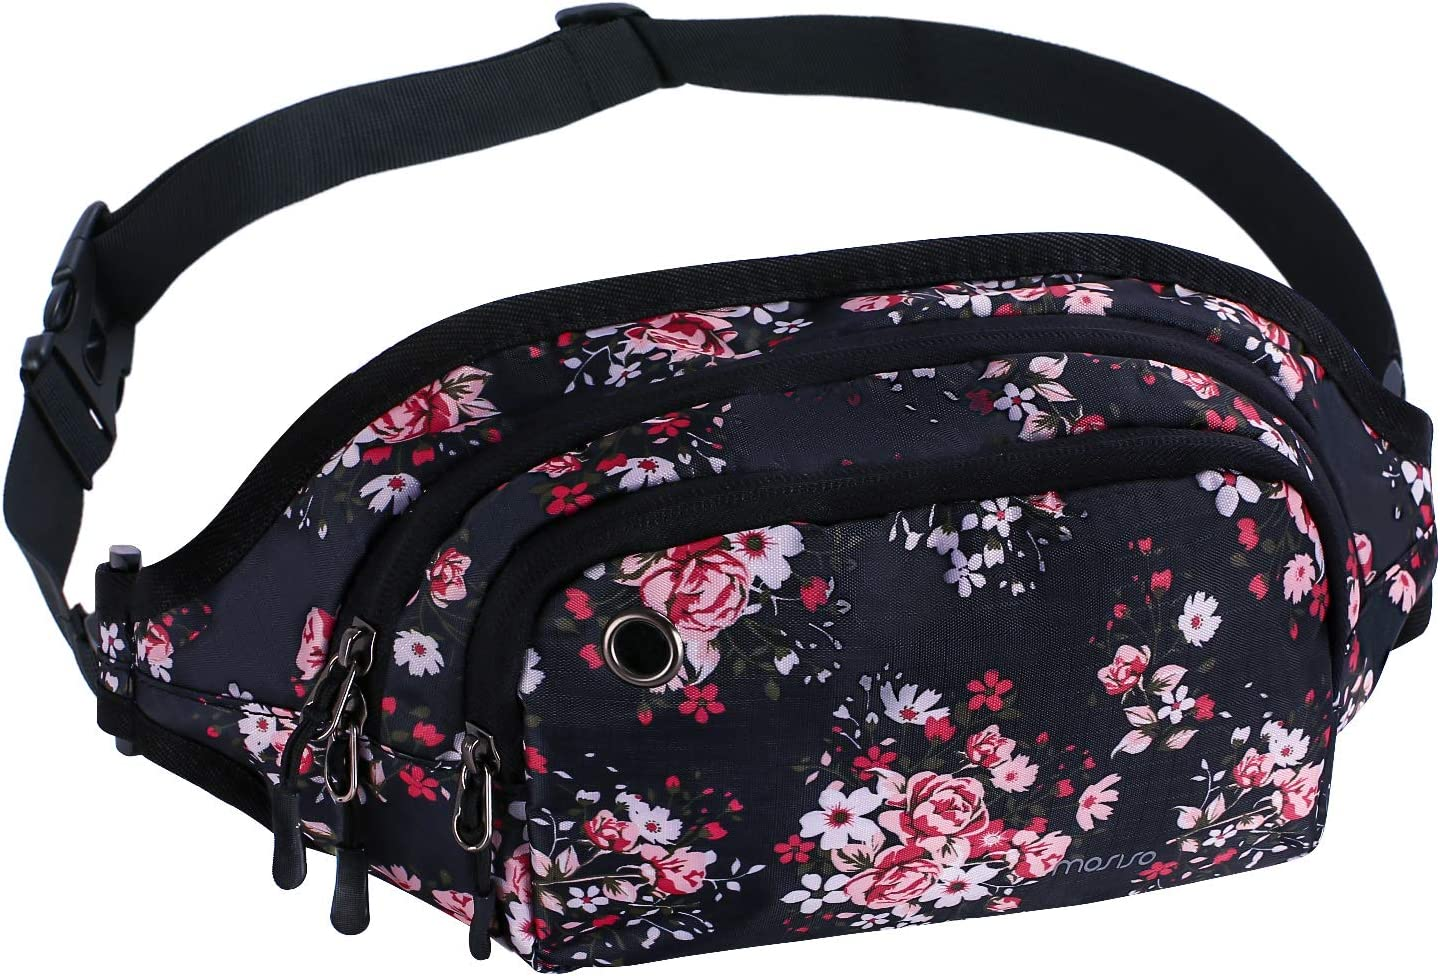 MOSISO Fanny Pack Waist Bag Unisex Sports Hiking Running Bum Belt Outdoor Pouch